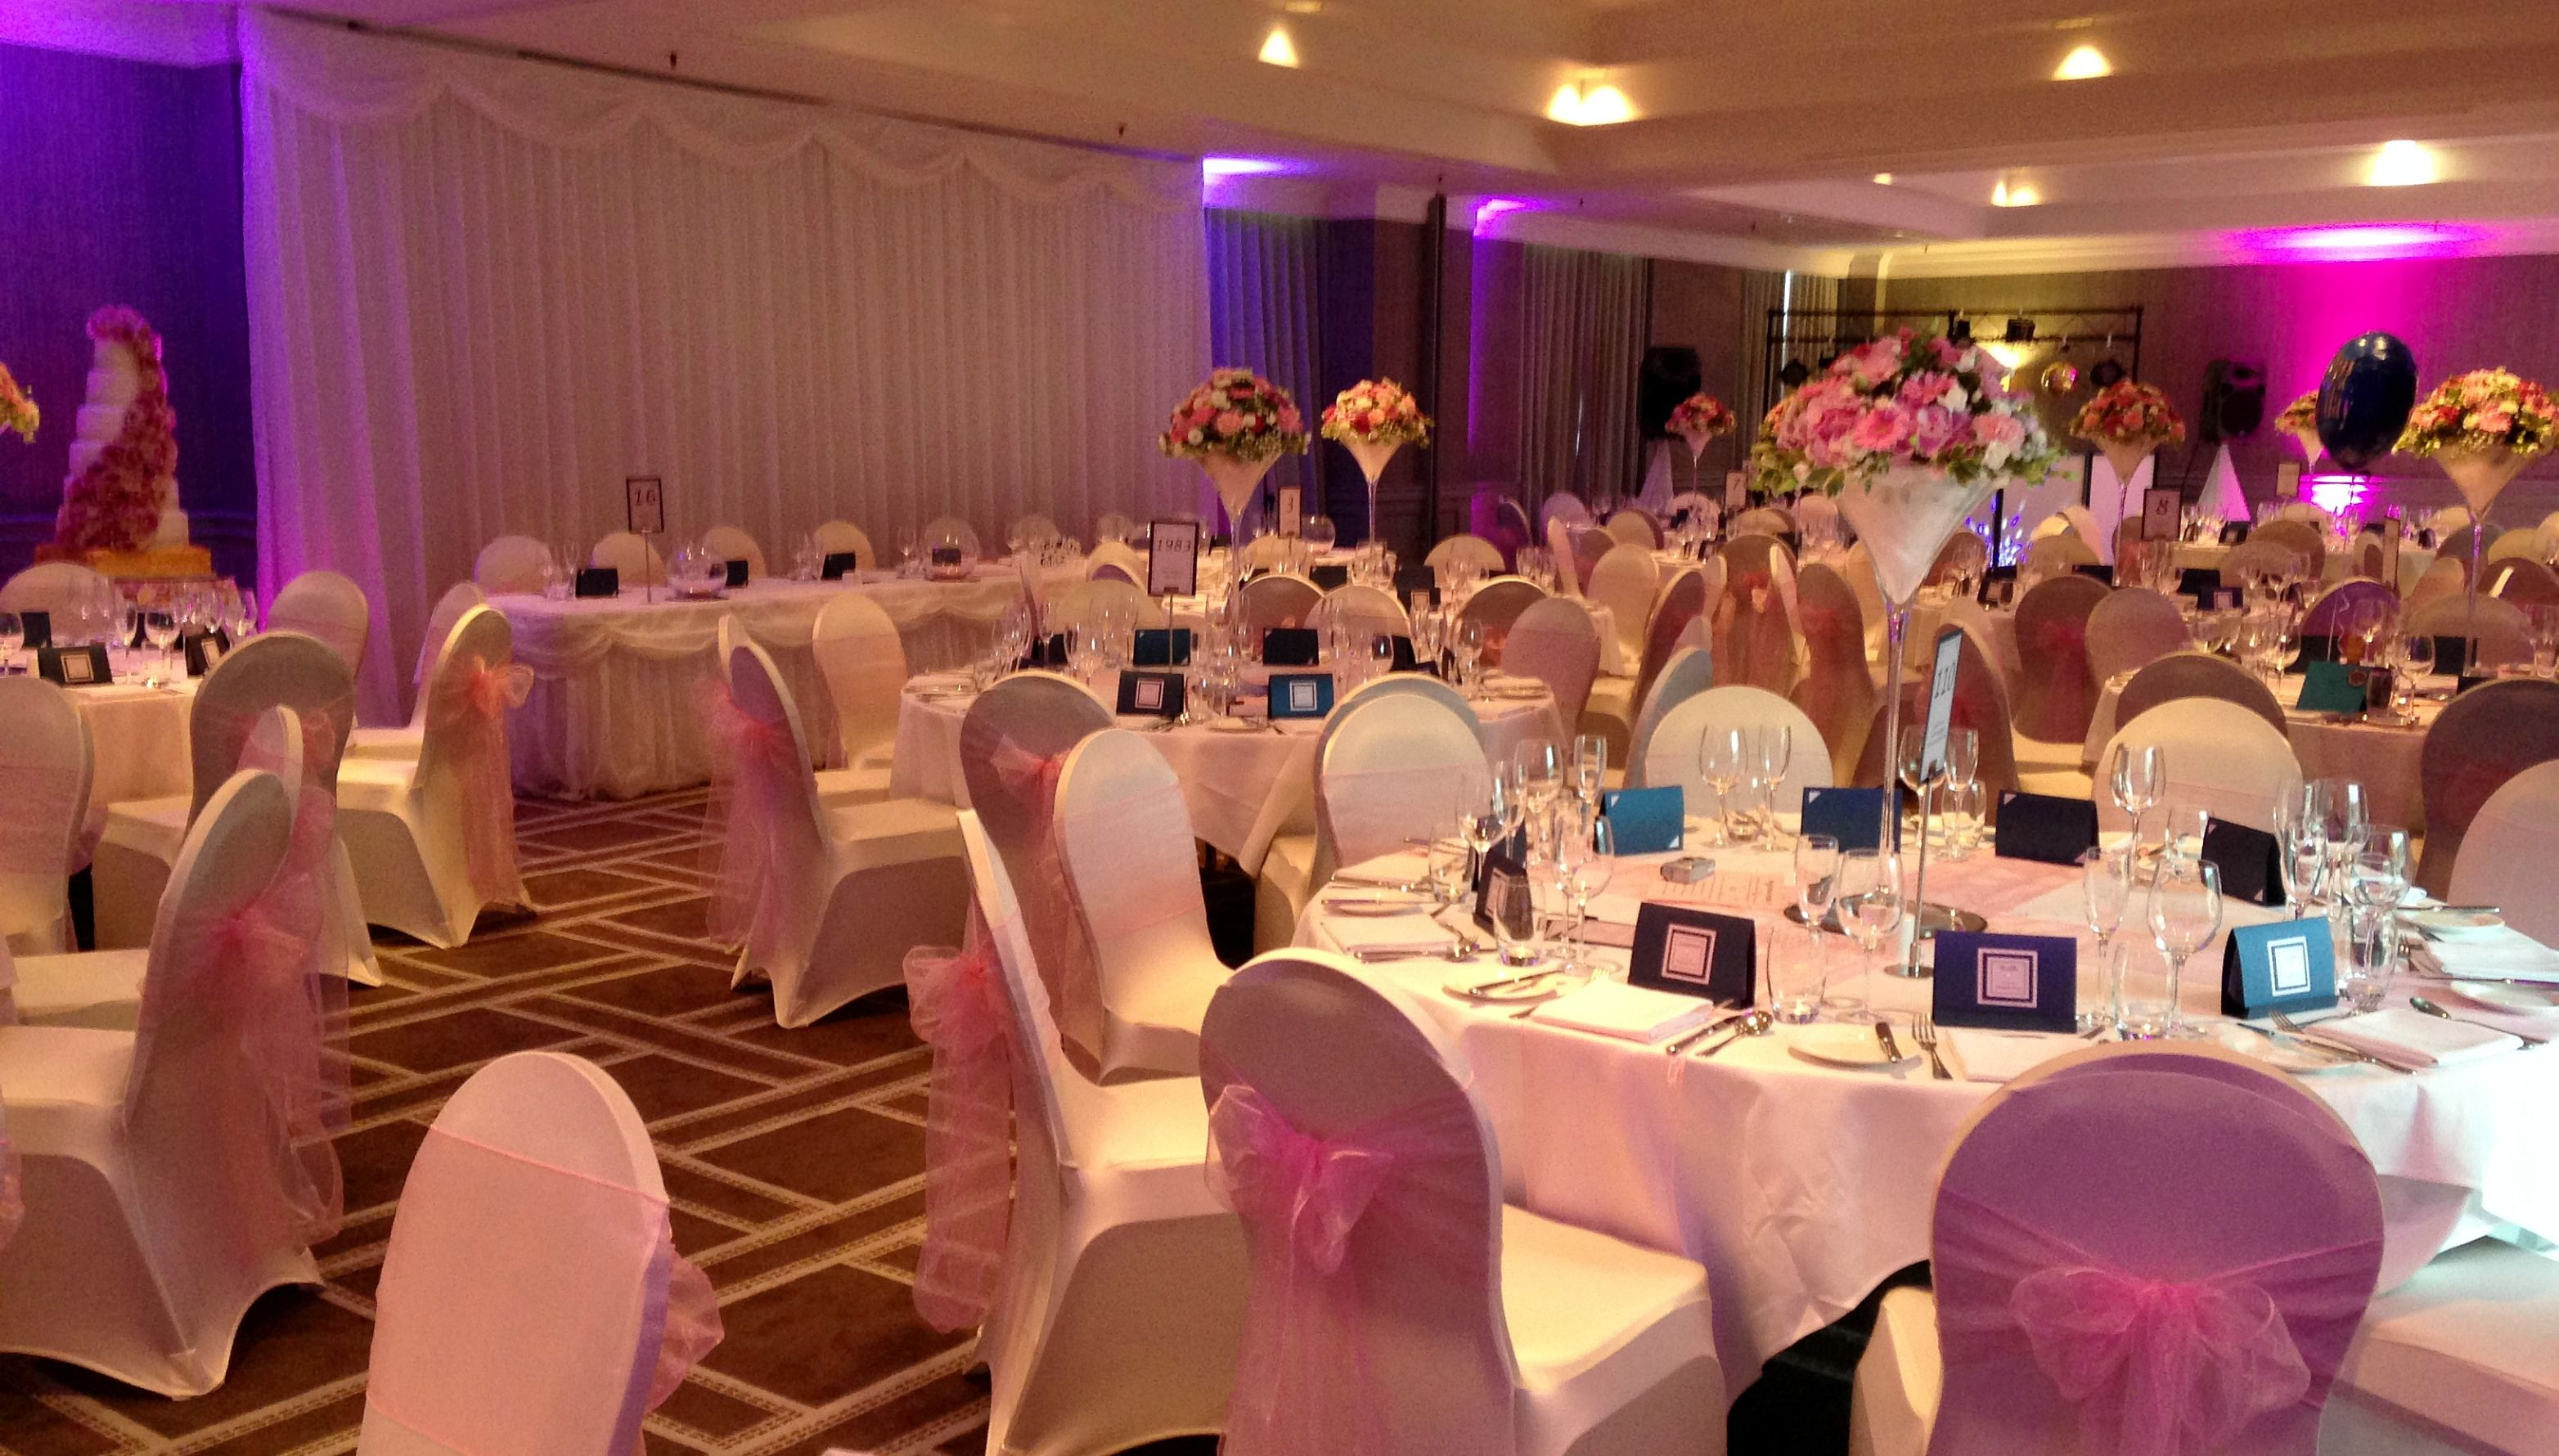 Wedding Breakfast With Uplighting Symphony Ballroom Hyatt Regency Birmingham